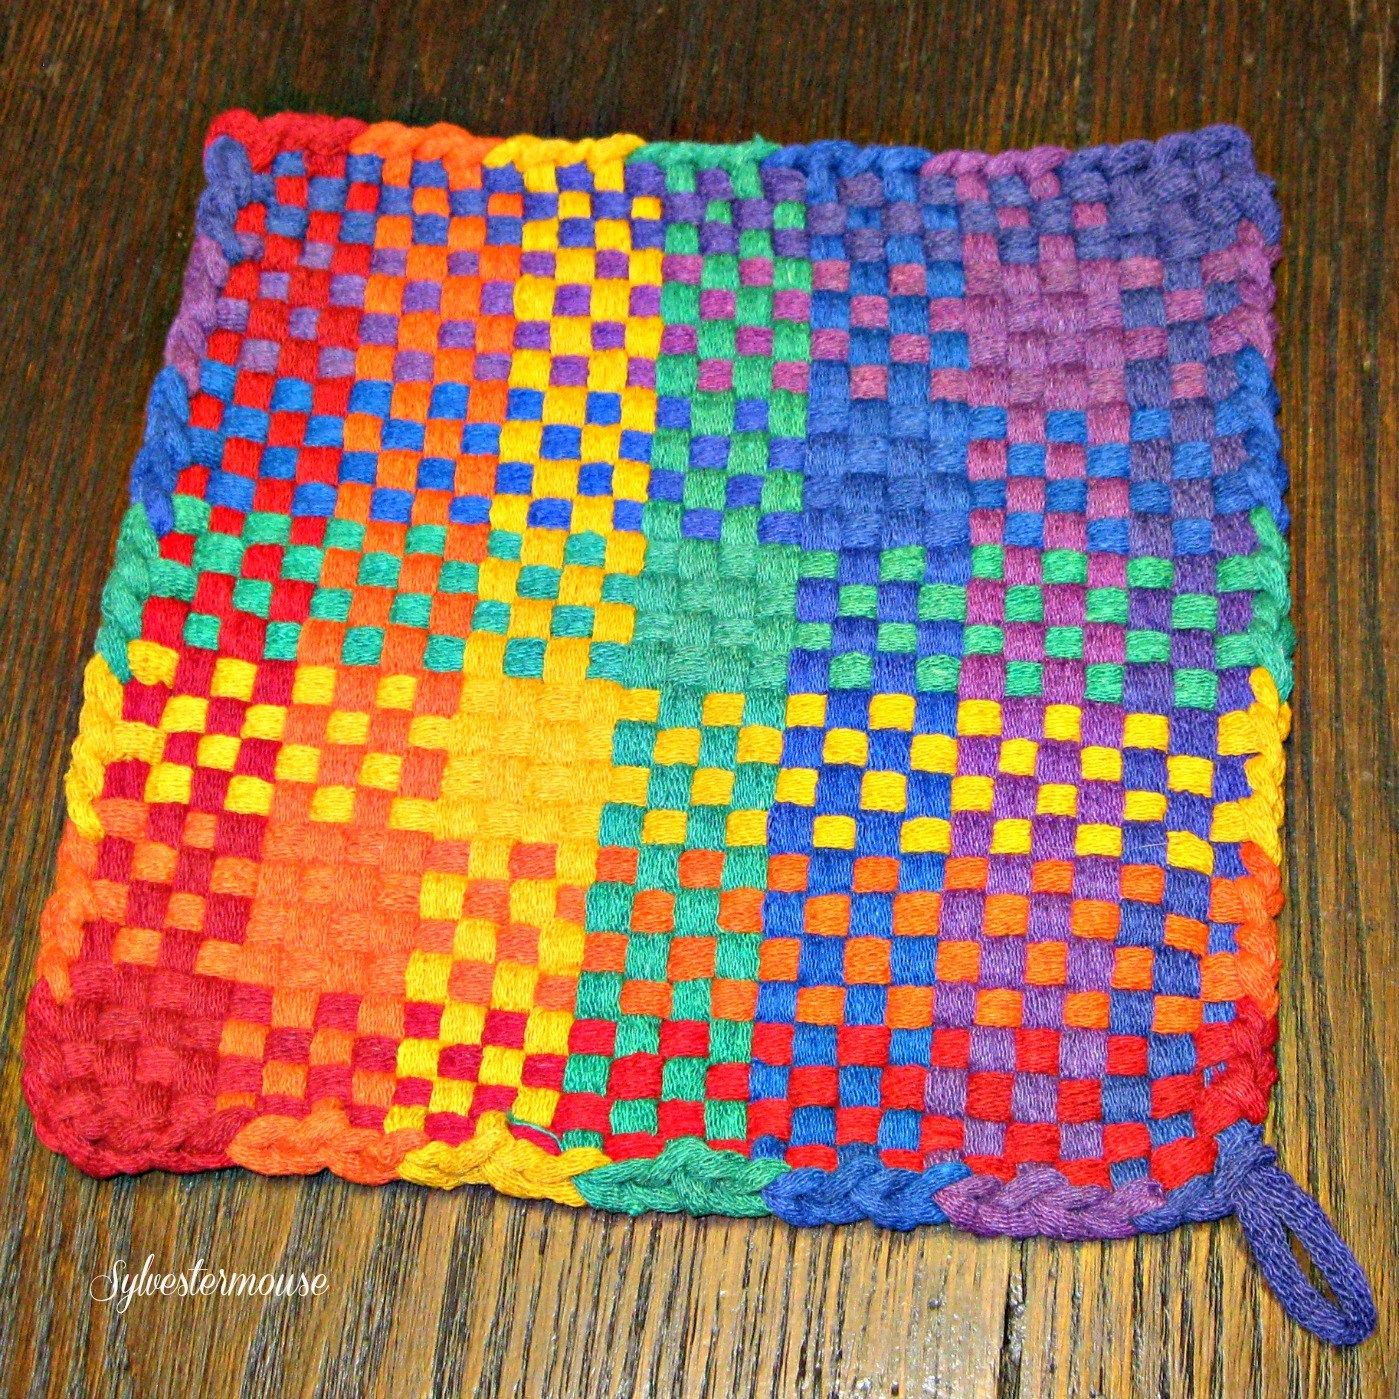 Potholder Pro Looms How To Make Large Potholders Crafters Kingdom Crafting With Sylvestermouse Potholder Patterns Potholder Loom Loom Craft